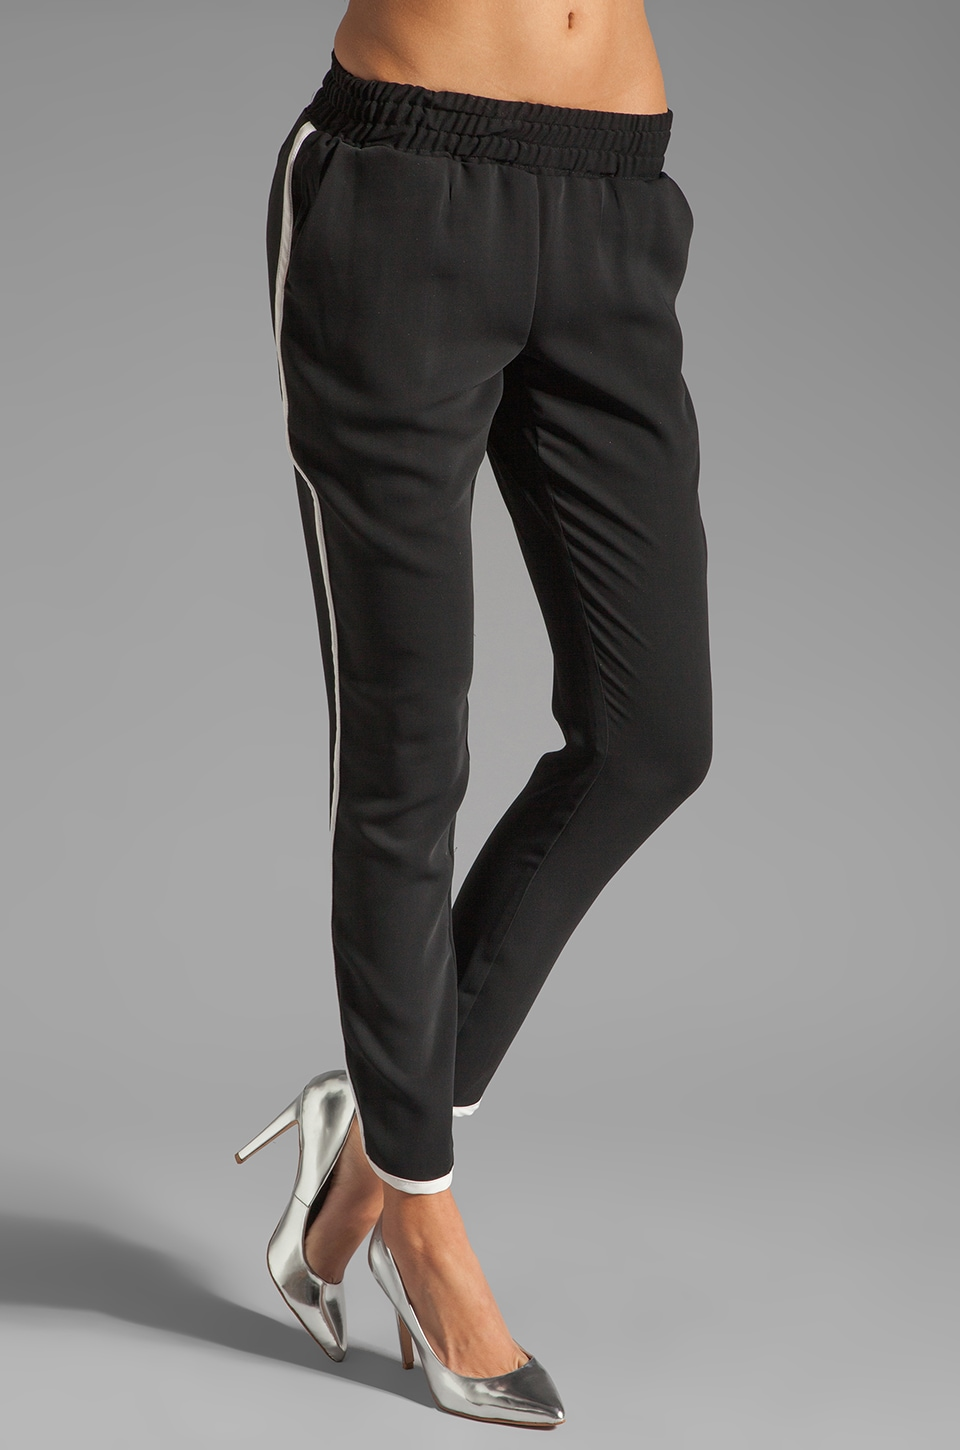 BEC&BRIDGE Barcelona Pant in Black